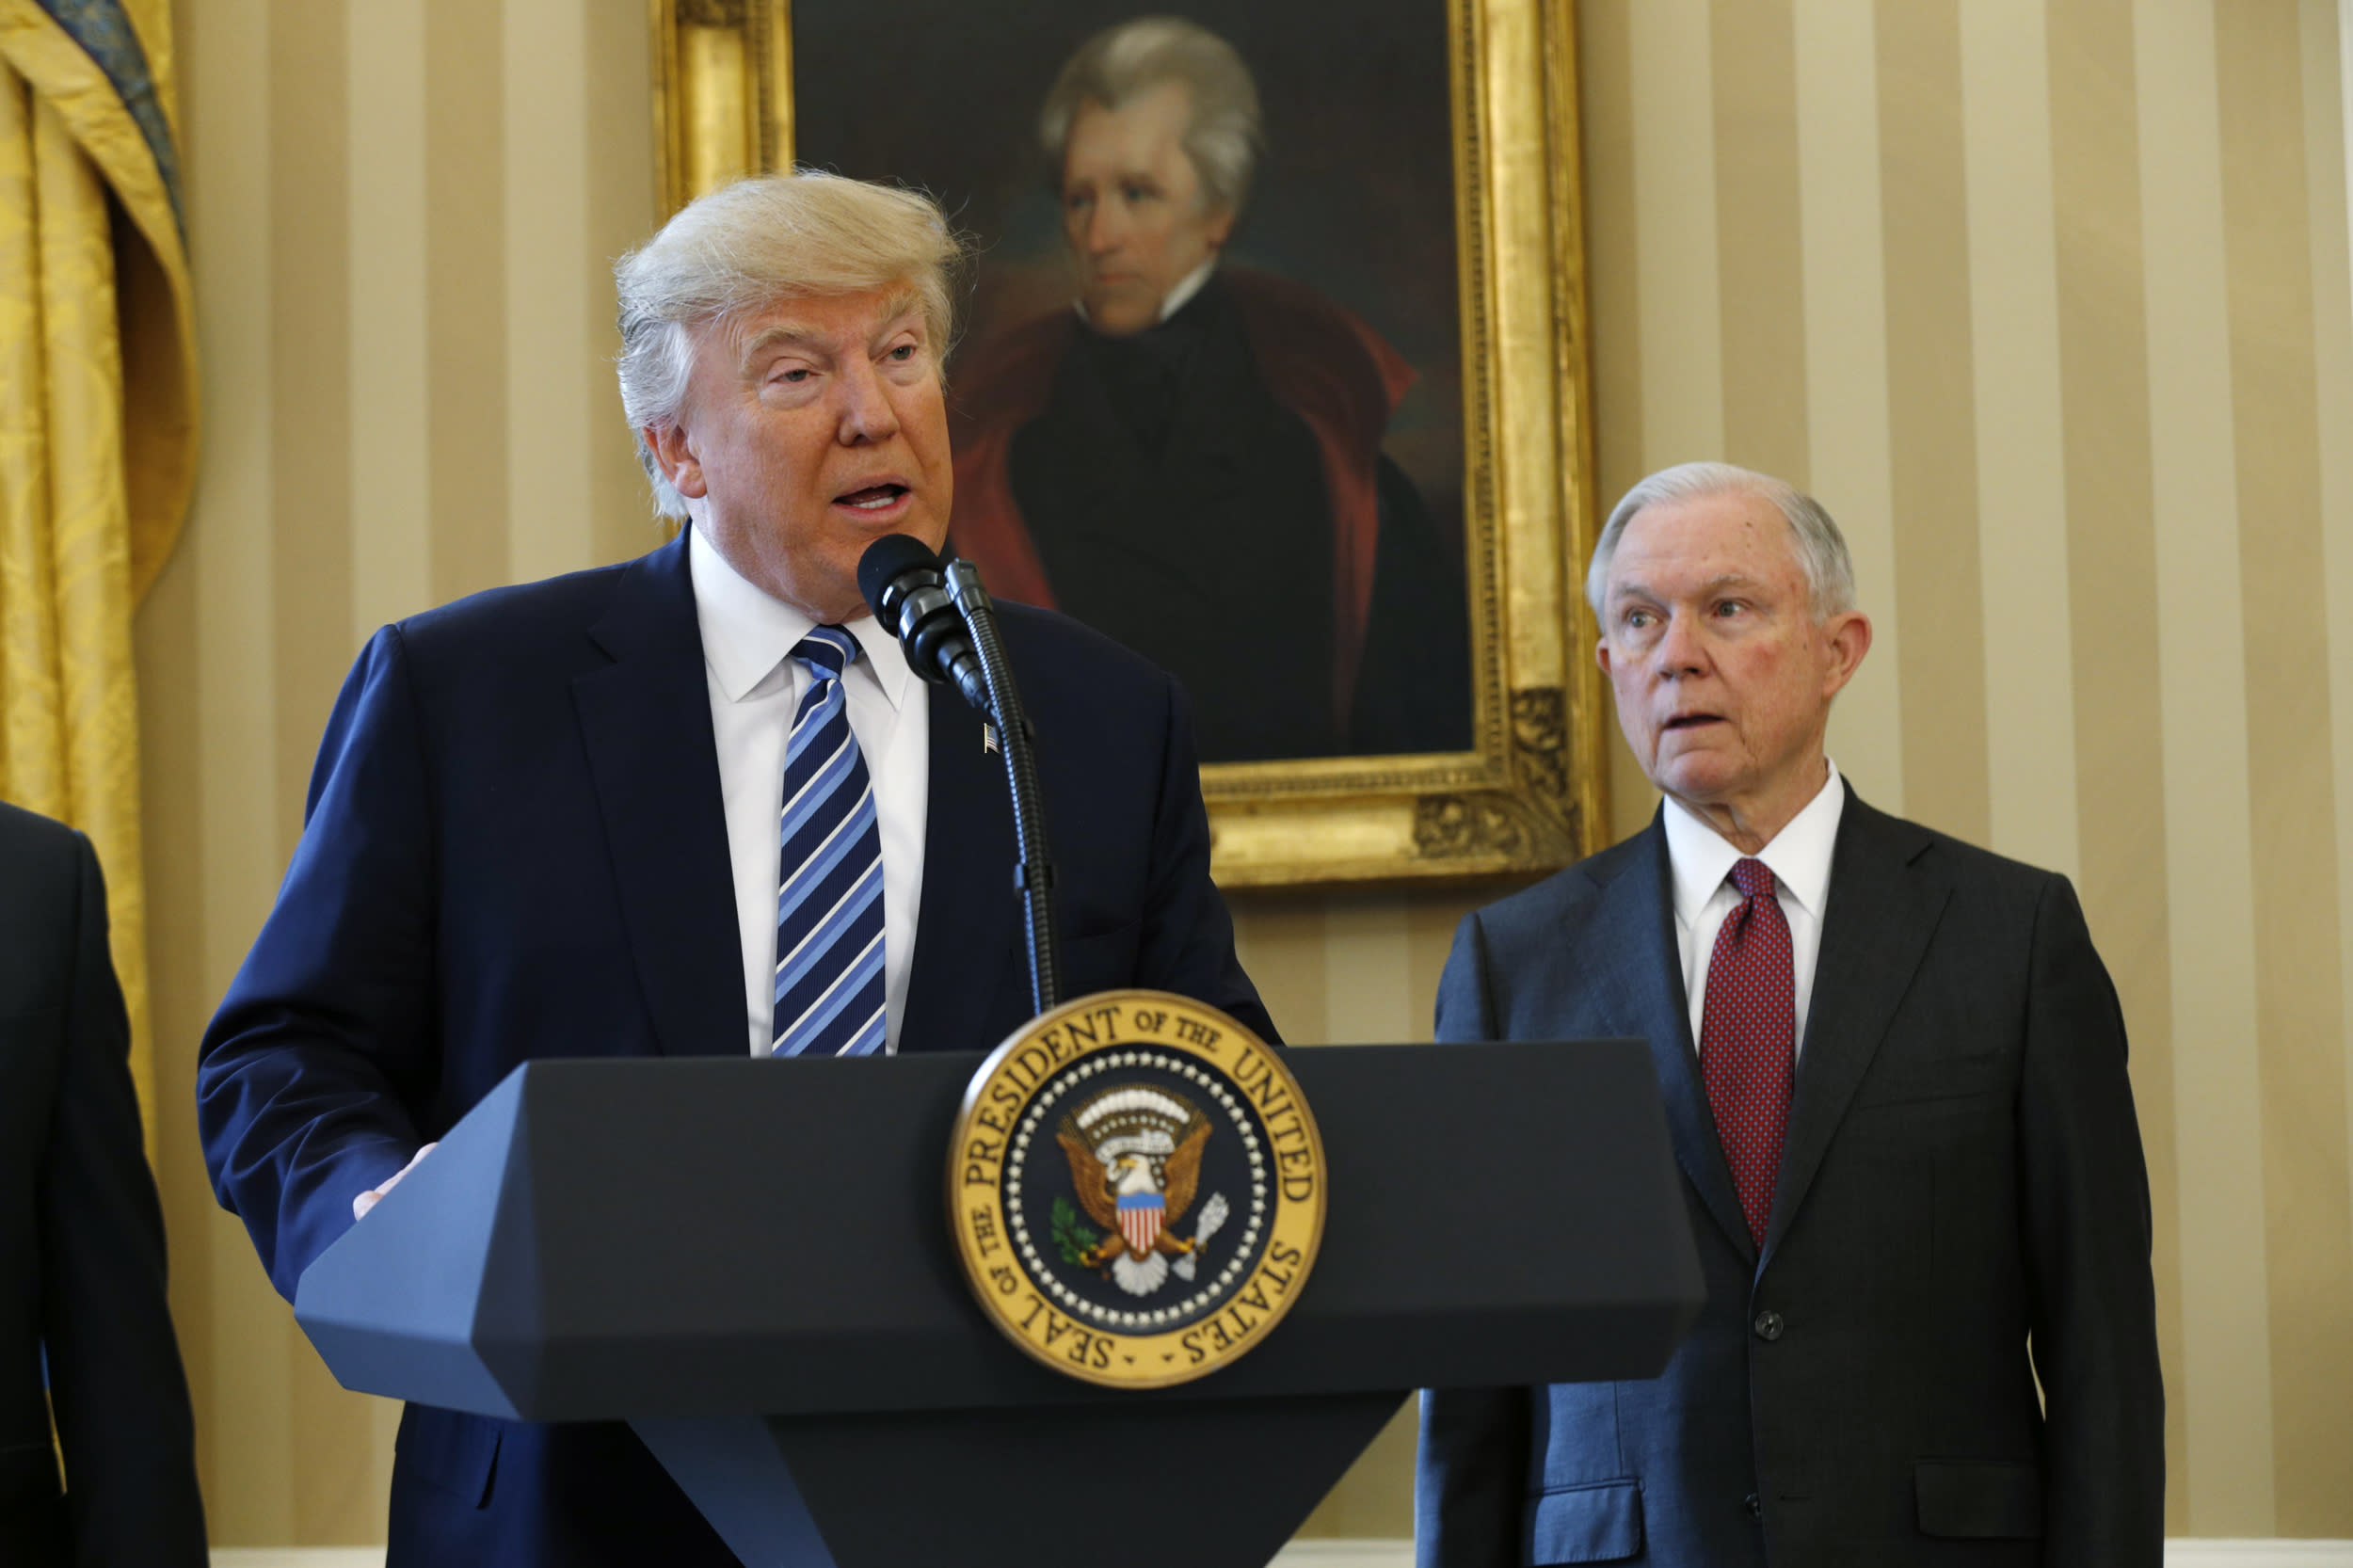 "<p>Trump reportedly called Attorney General <a href=""https://www.cnn.com/2018/09/04/politics/bob-woodward-donald-trump-jeff-sessions/index.html"" target=""_blank"">Jeff Sessions</a> a 'dumb Southerner,' a 'traitor' and 'mentally retarded,' according to famed Washington Post journalist Bob Woodward's book, 'Fear: Trump in the White House.' </p>  <p>(REUTERS/Kevin Lamarque)</p>"